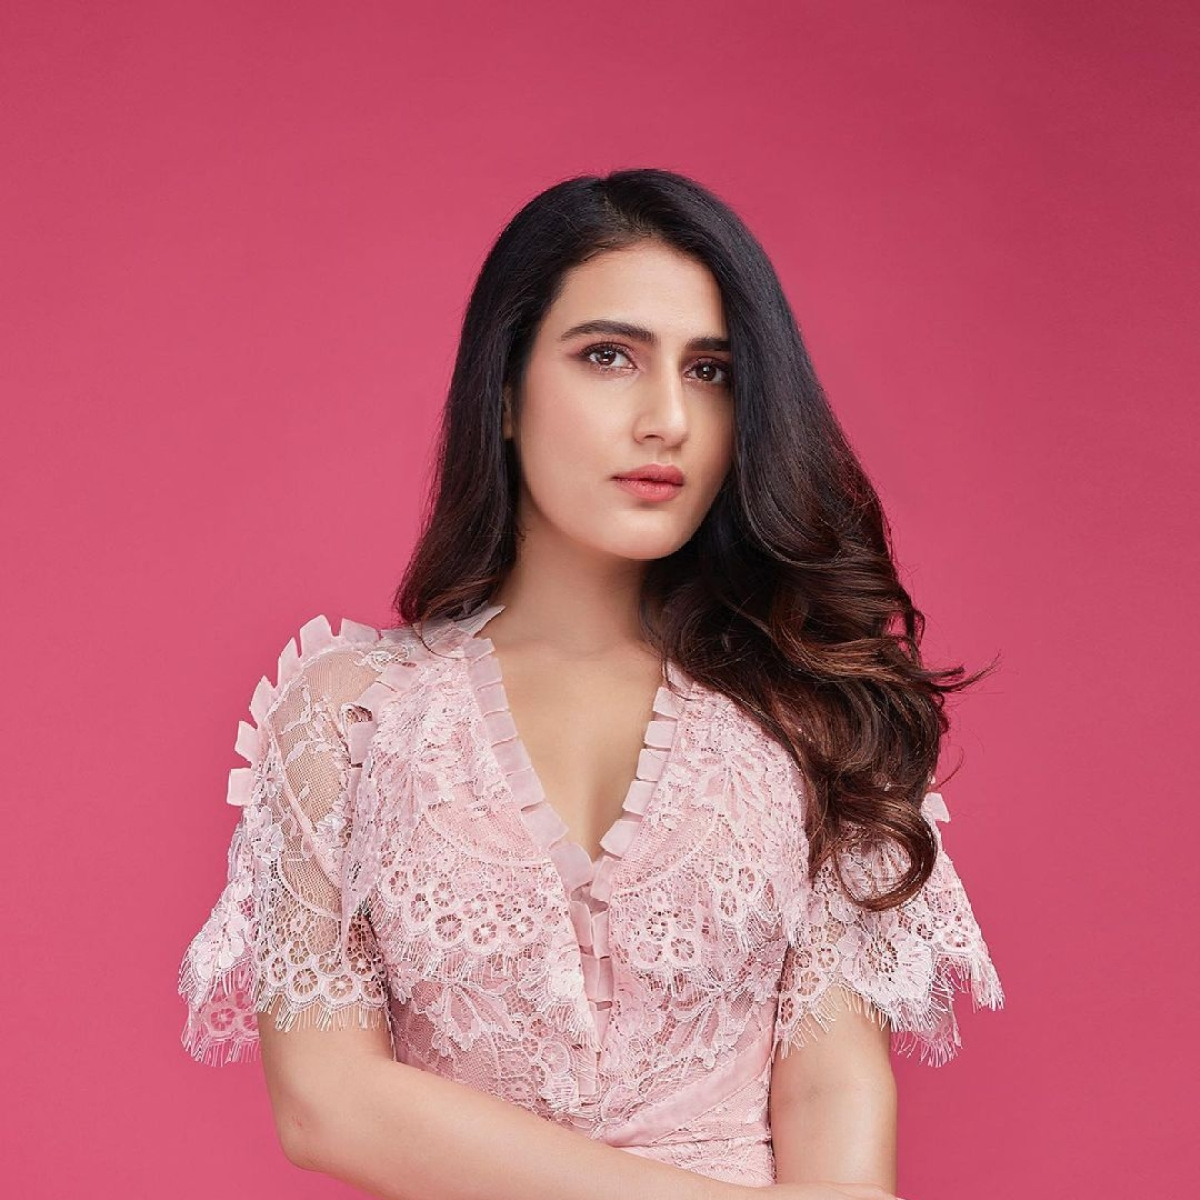 'Only way to get a job is through sex': Fatima Sana Shaikh opens up about facing sexism, rejection